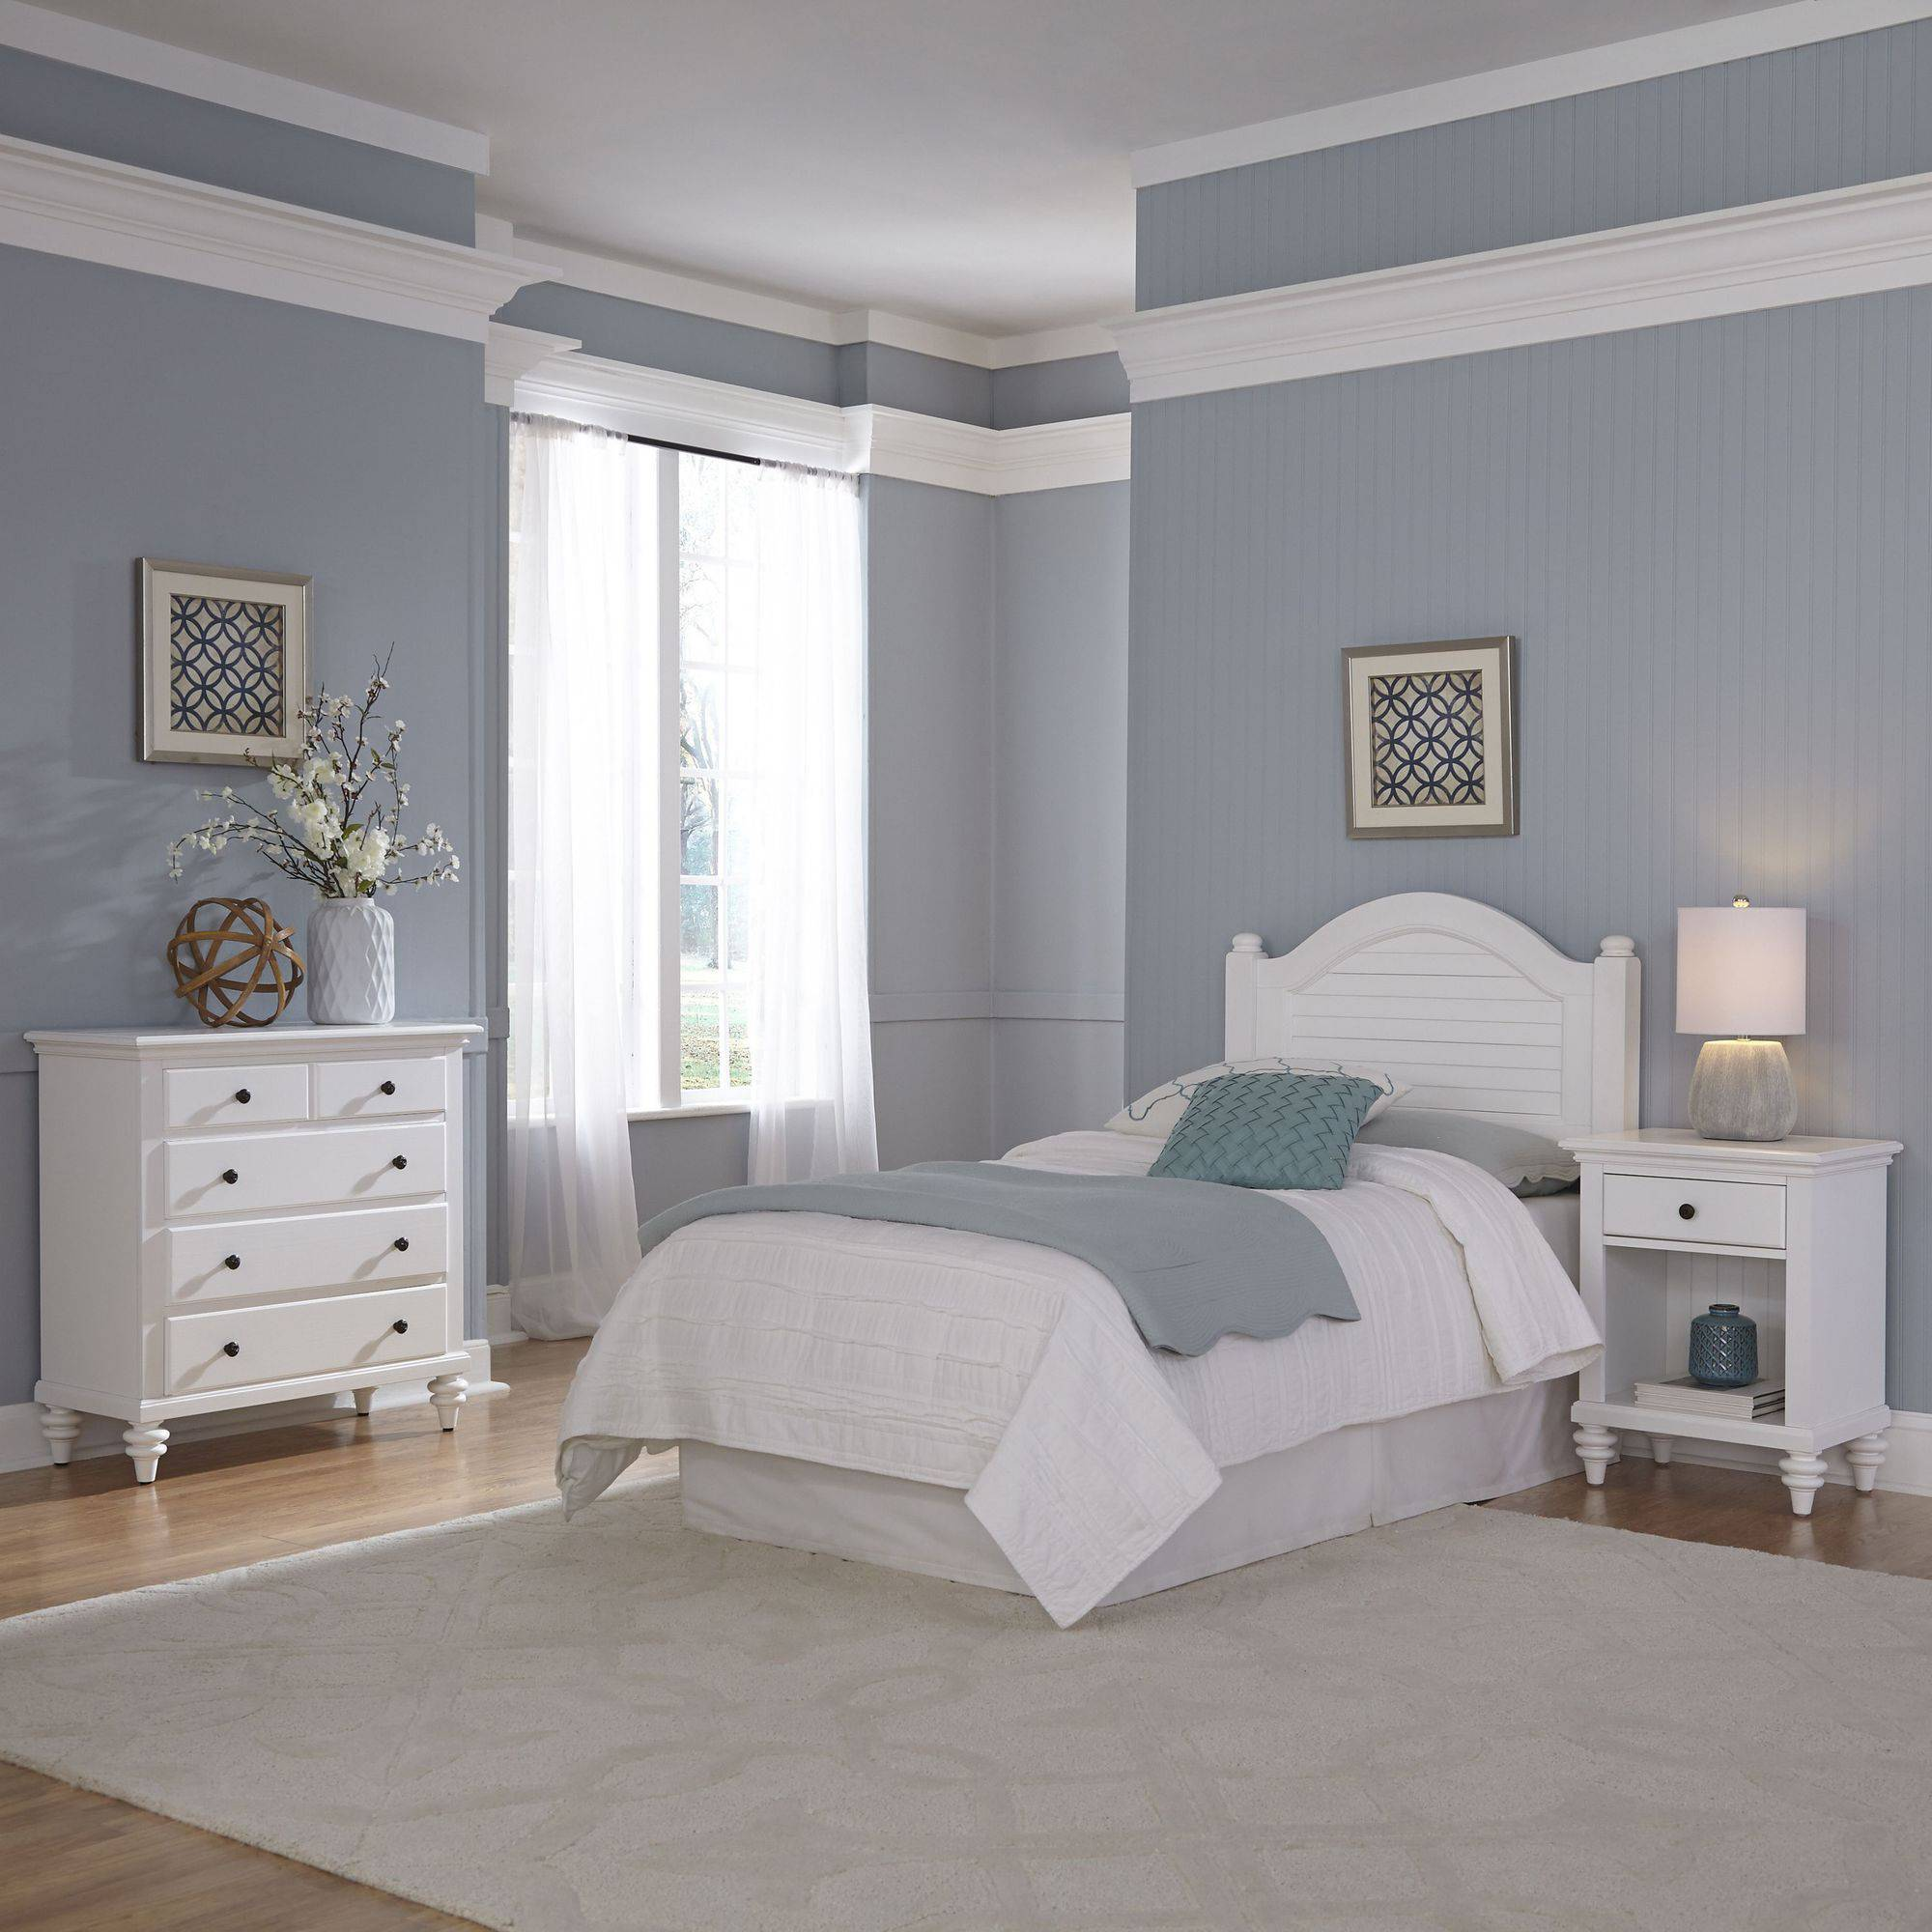 Home Styles Furniture Bermuda White Twin Headboard, Night Stand and Chest